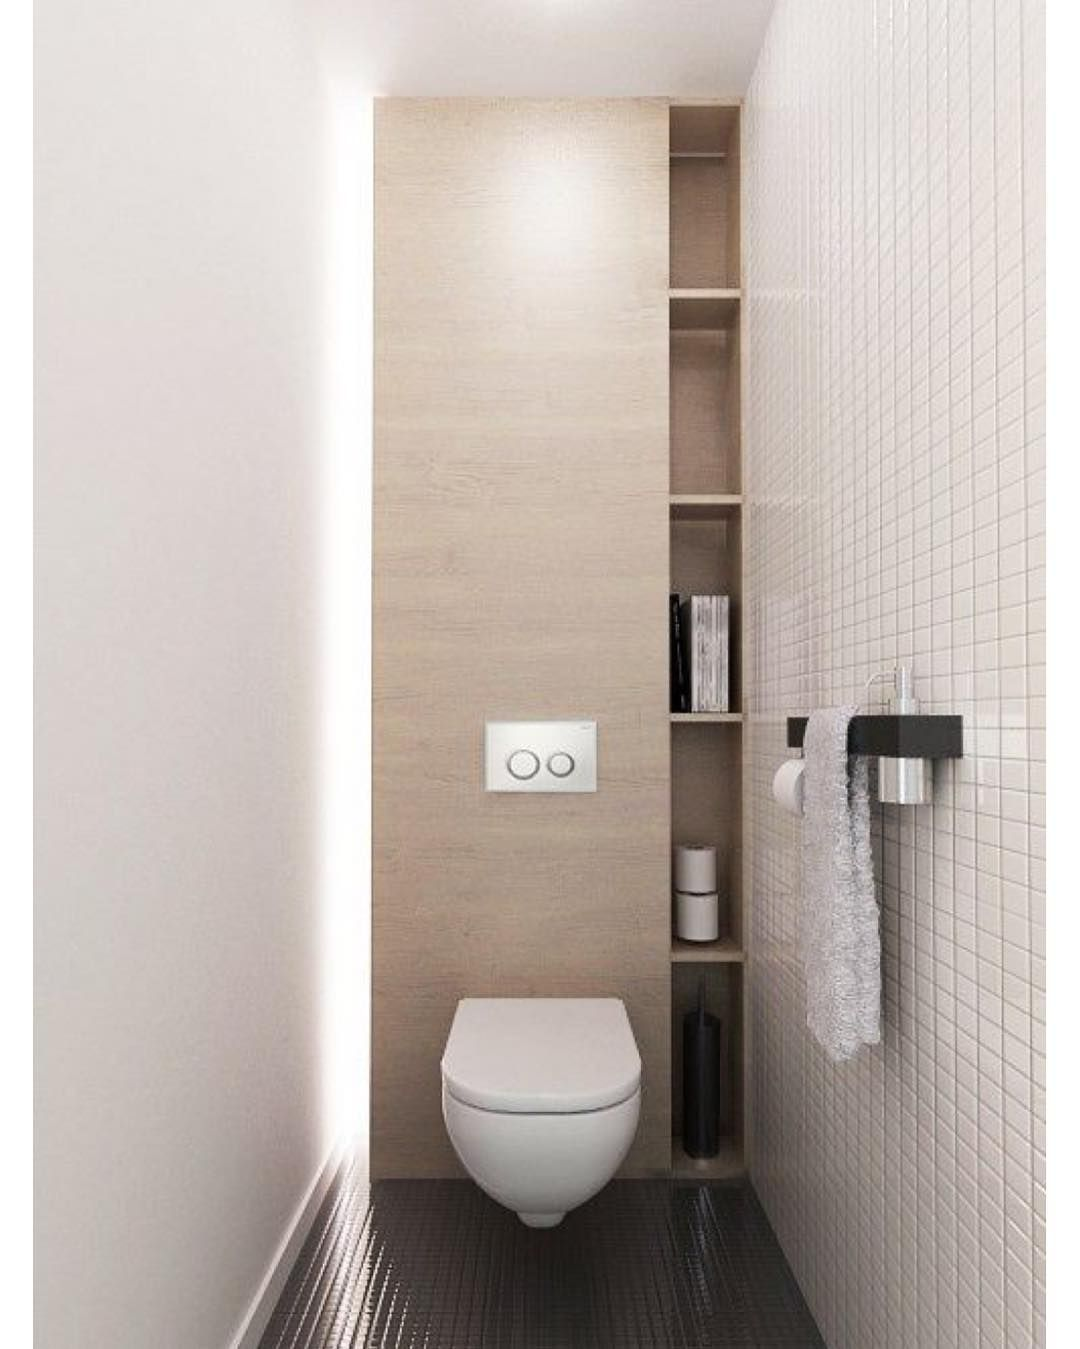 42 Best Ideas To Make Small Bathroom More Convenient And Spacious